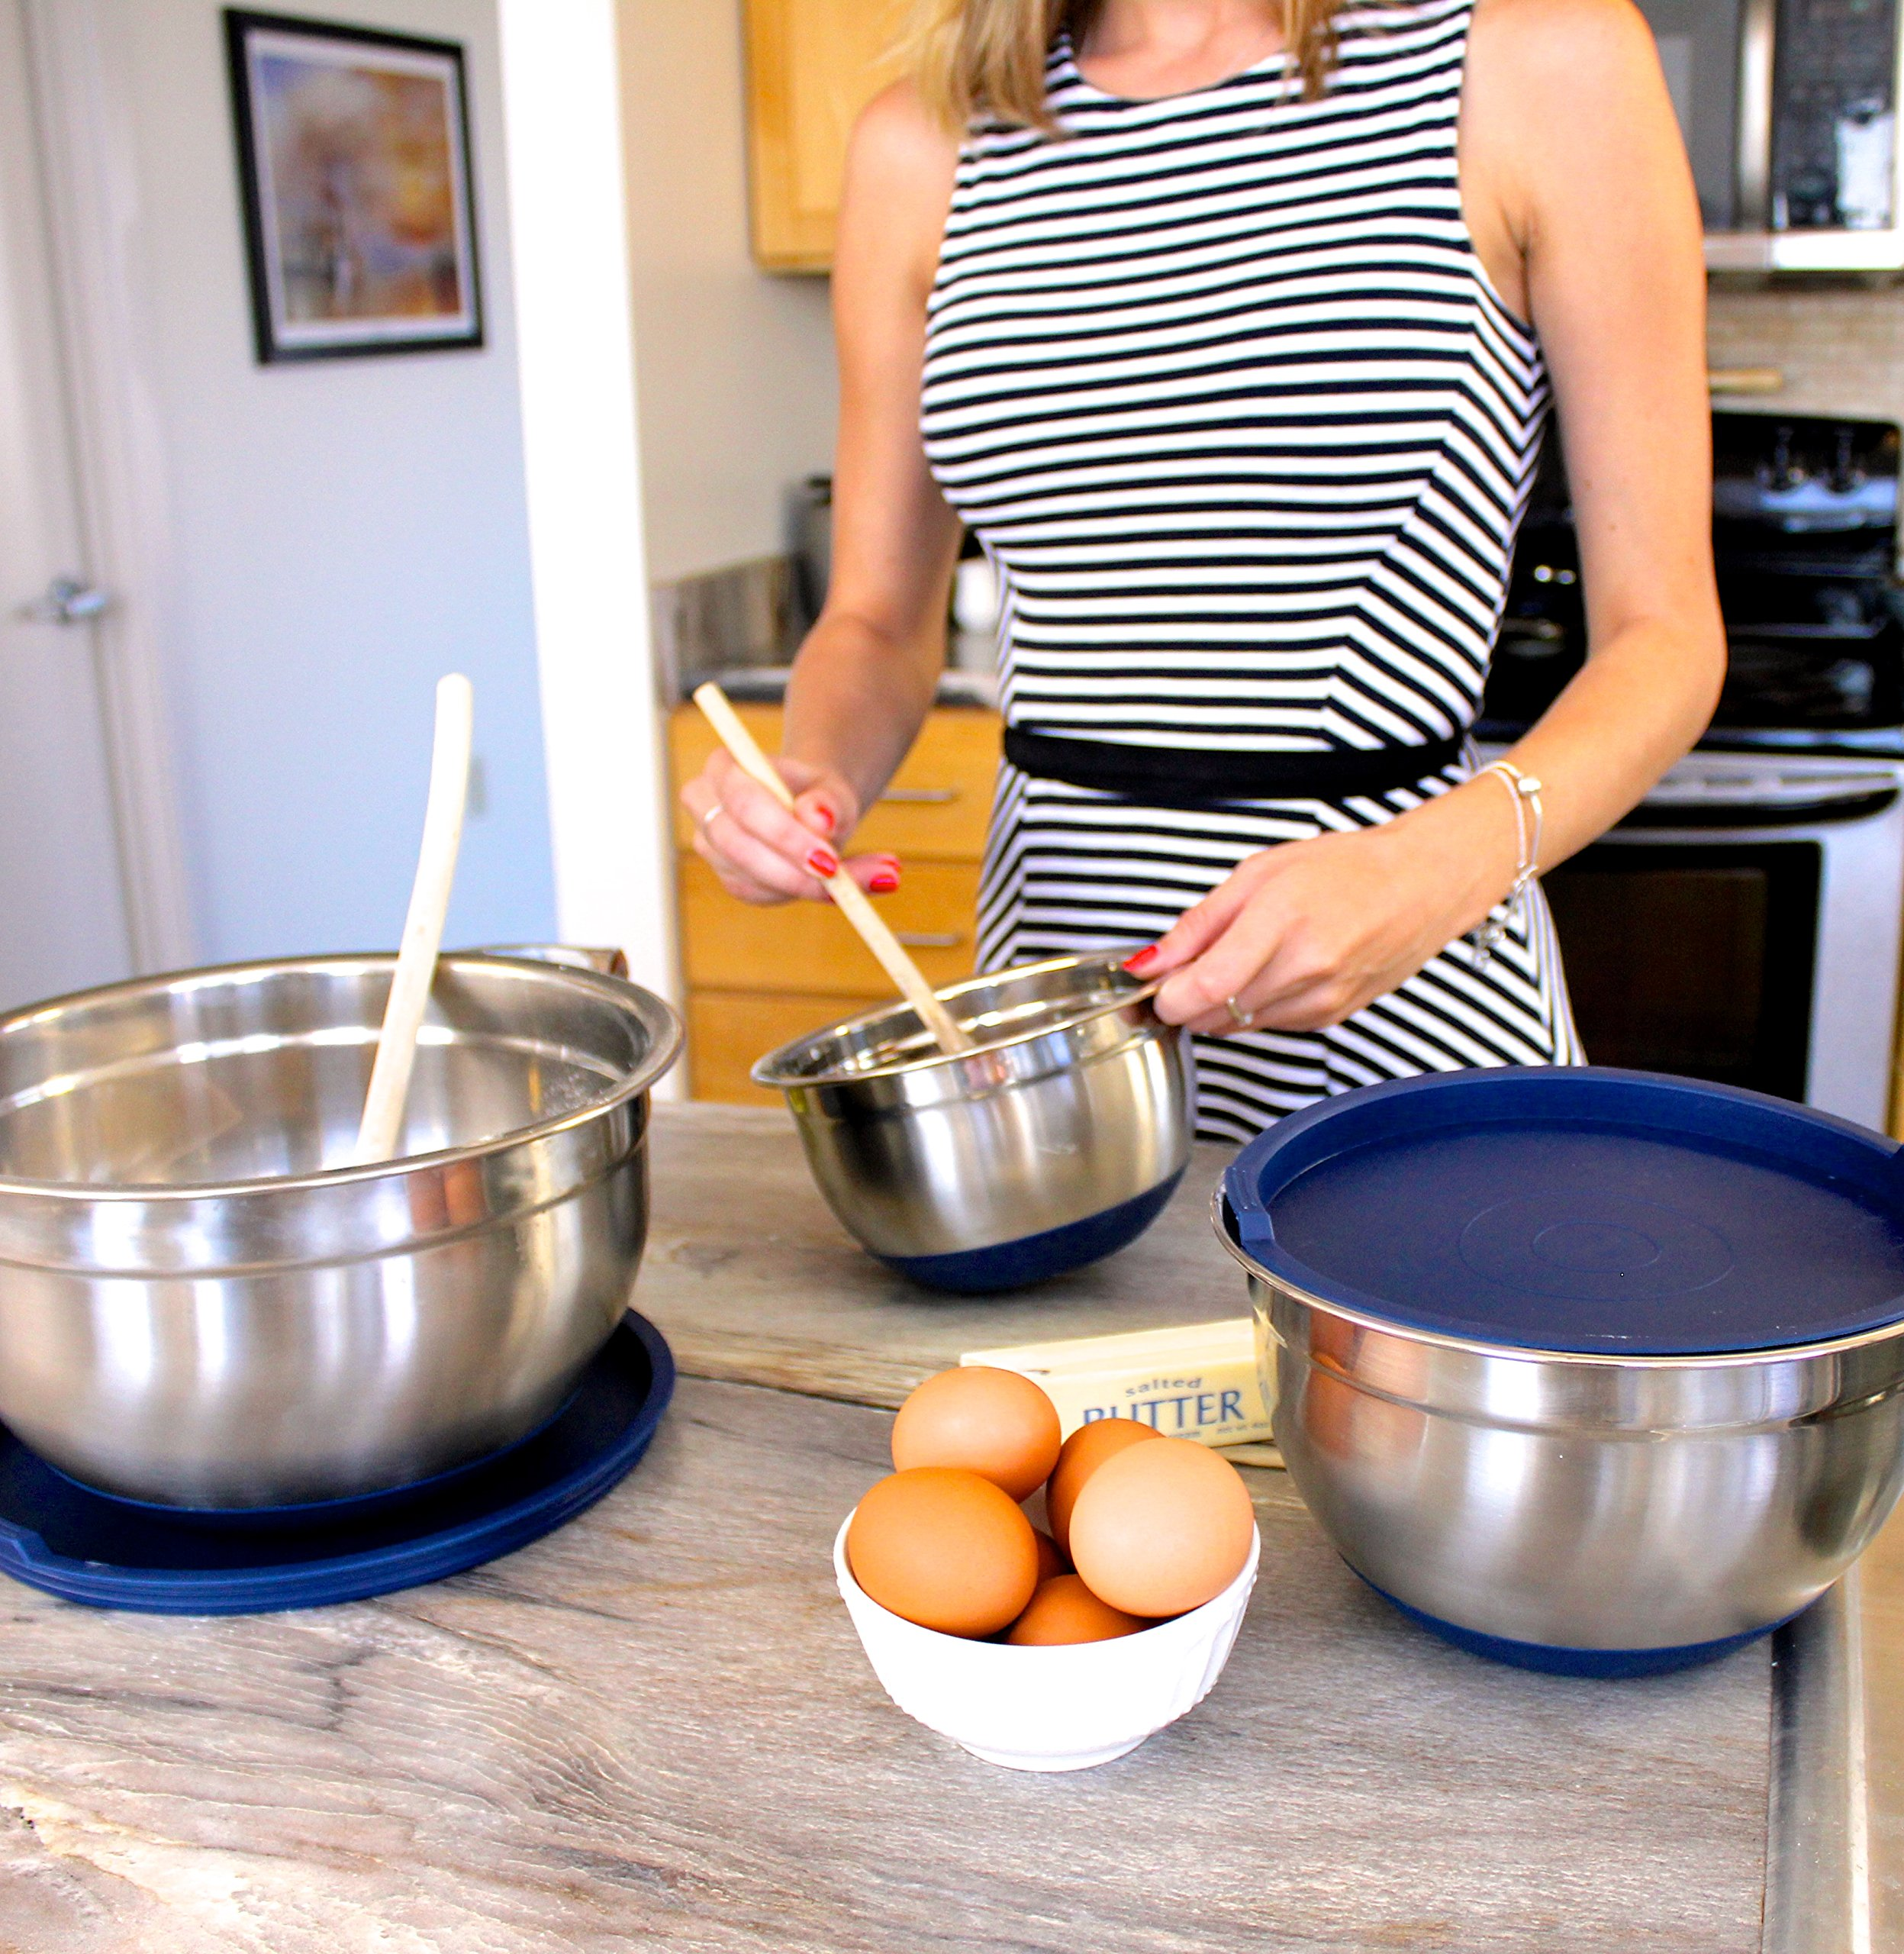 Fitzroy and Fox Non-Slip Stainless Steel Mixing Bowls with Lids, Set of 3, Blue by Fitzroy and Fox (Image #6)